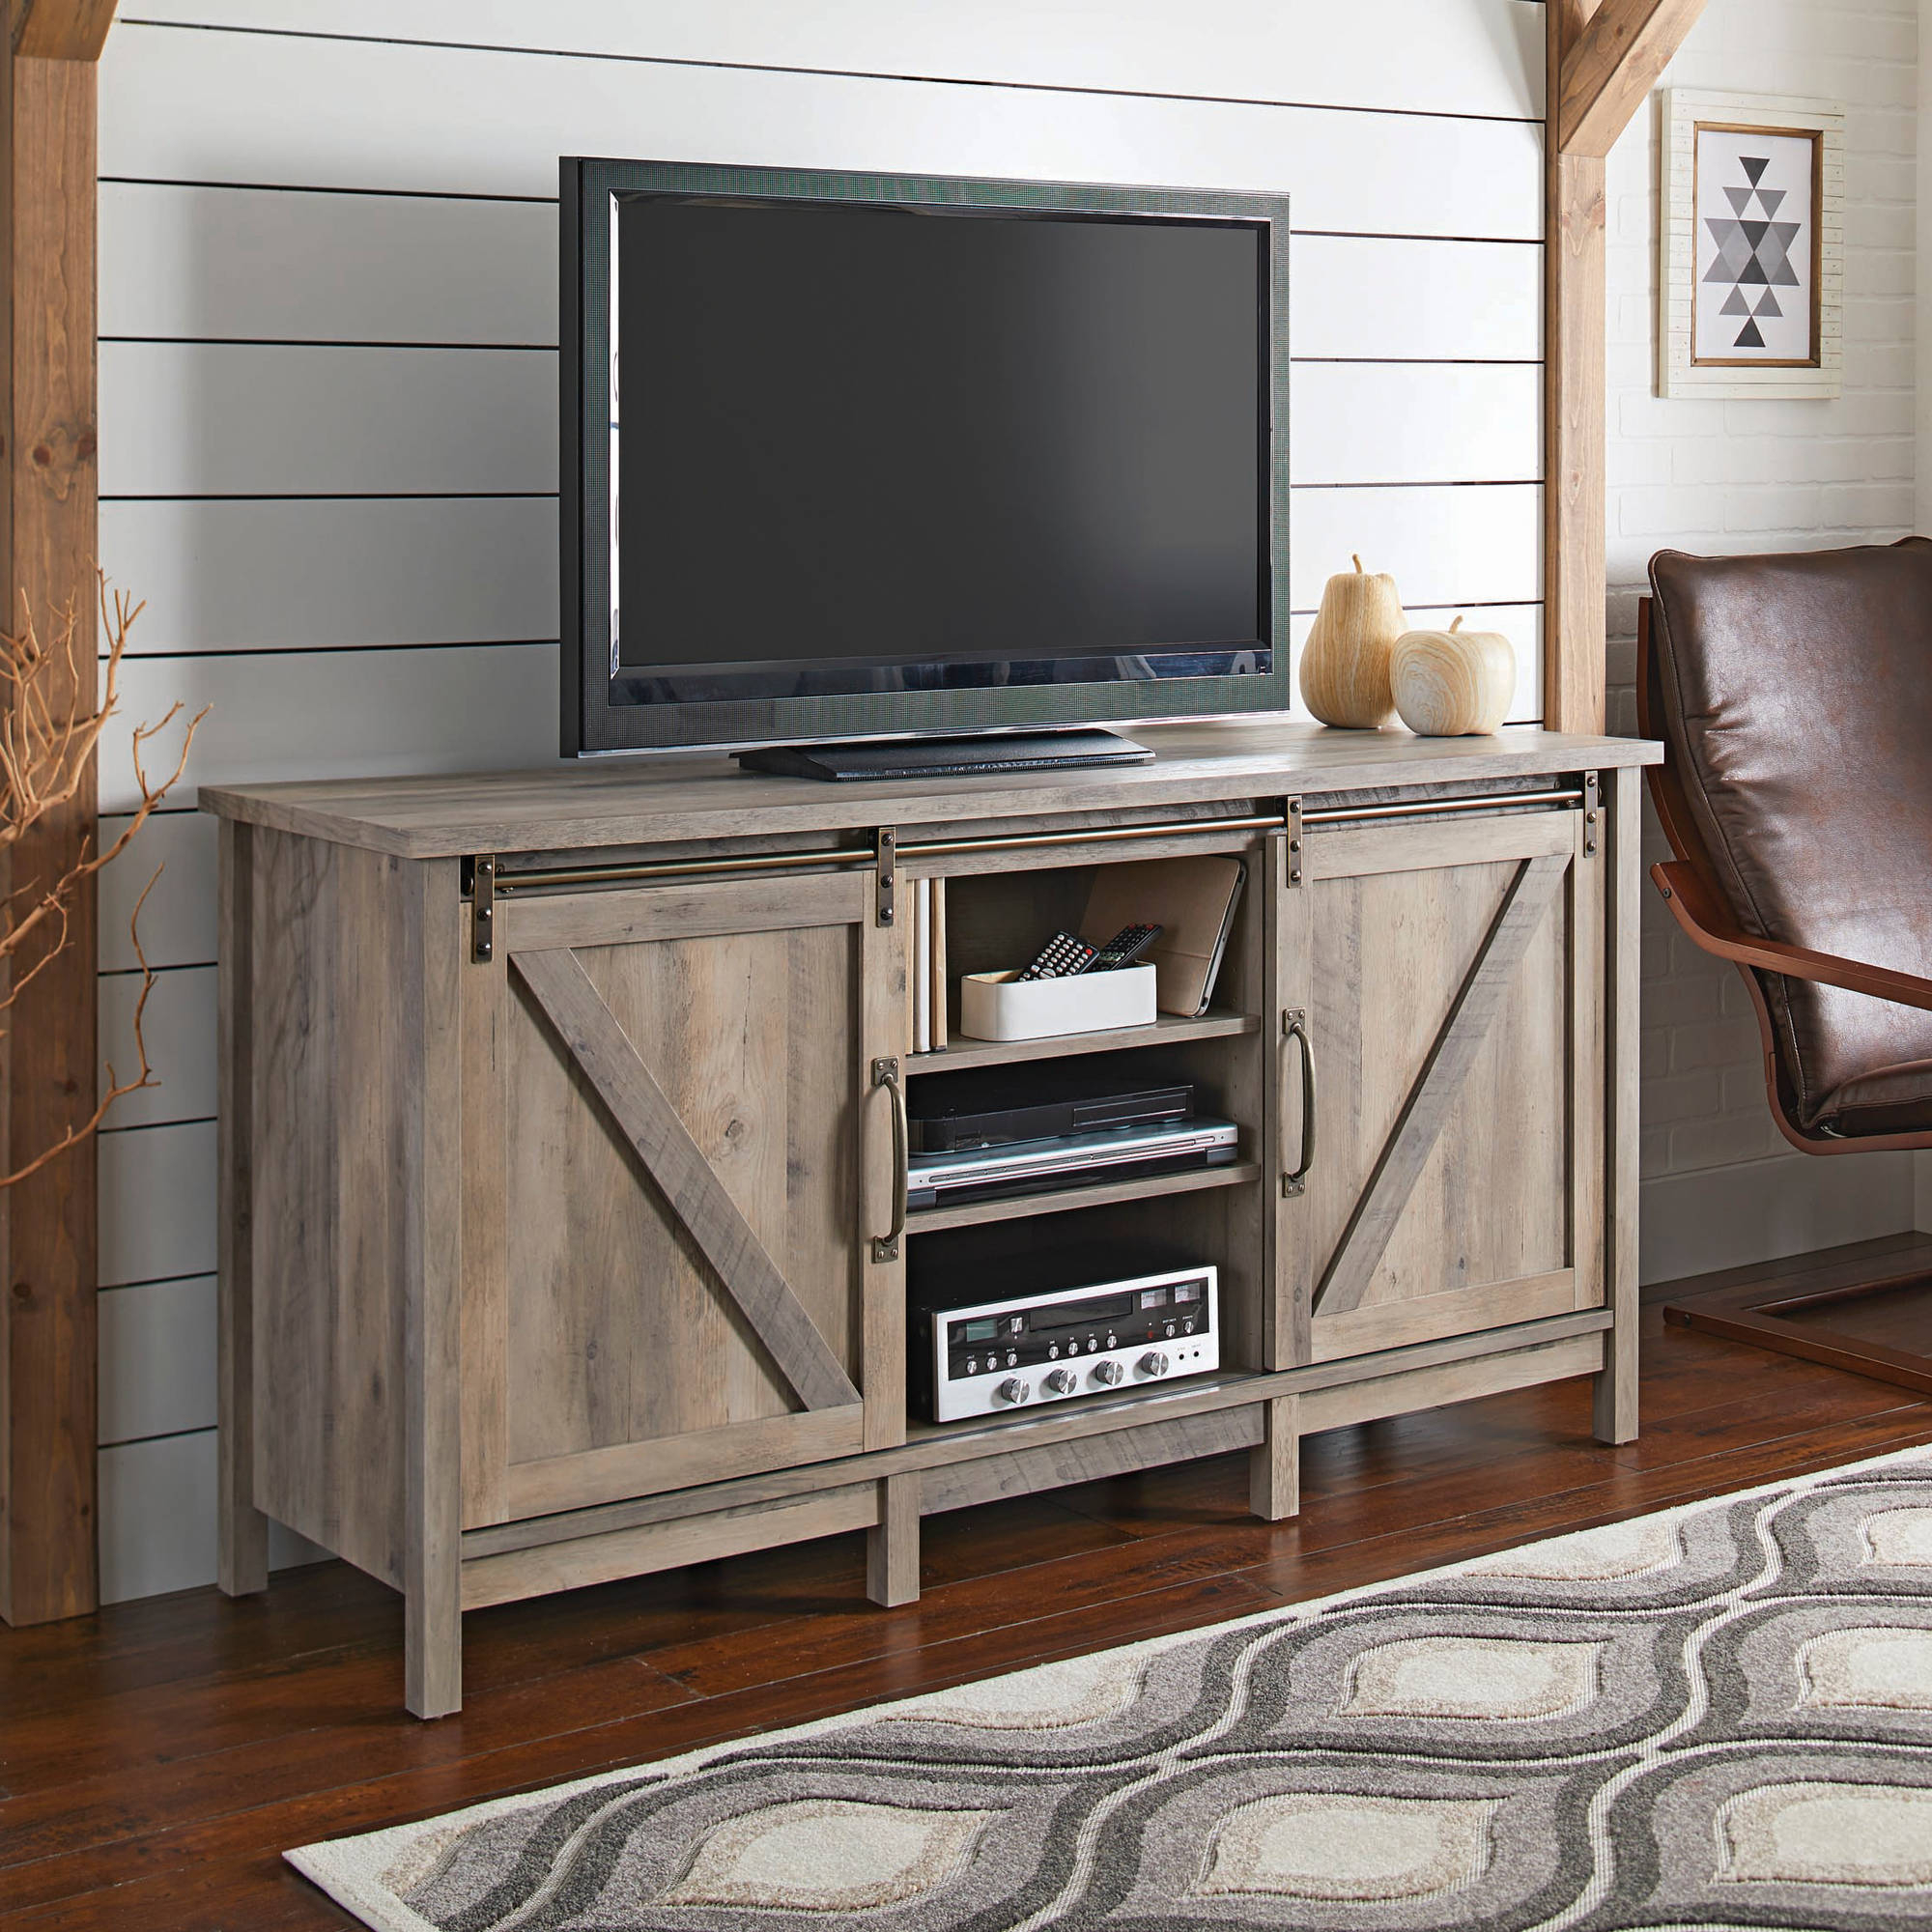 Better Homes And Gardens Modern Farmhouse Tv Stand For Tvs With Regard To Robinson Rustic Farmhouse Sliding Barn Door Corner Tv Stands (View 2 of 20)